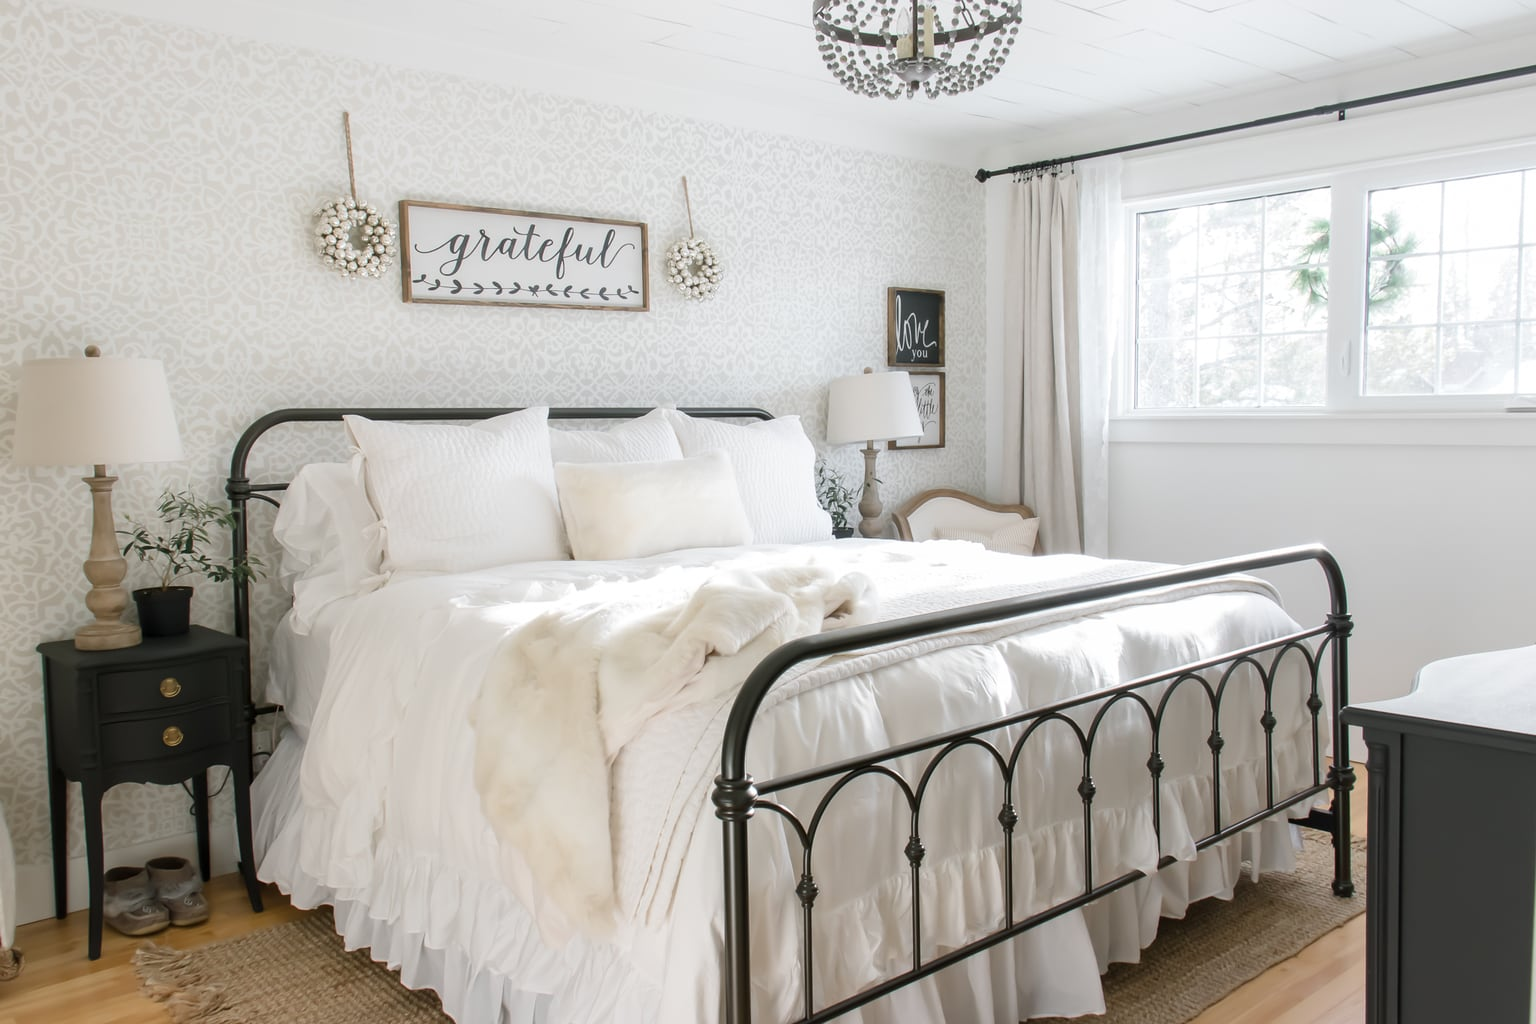 Simple Farmhouse Christmas Bedroom Decor - making it in ...